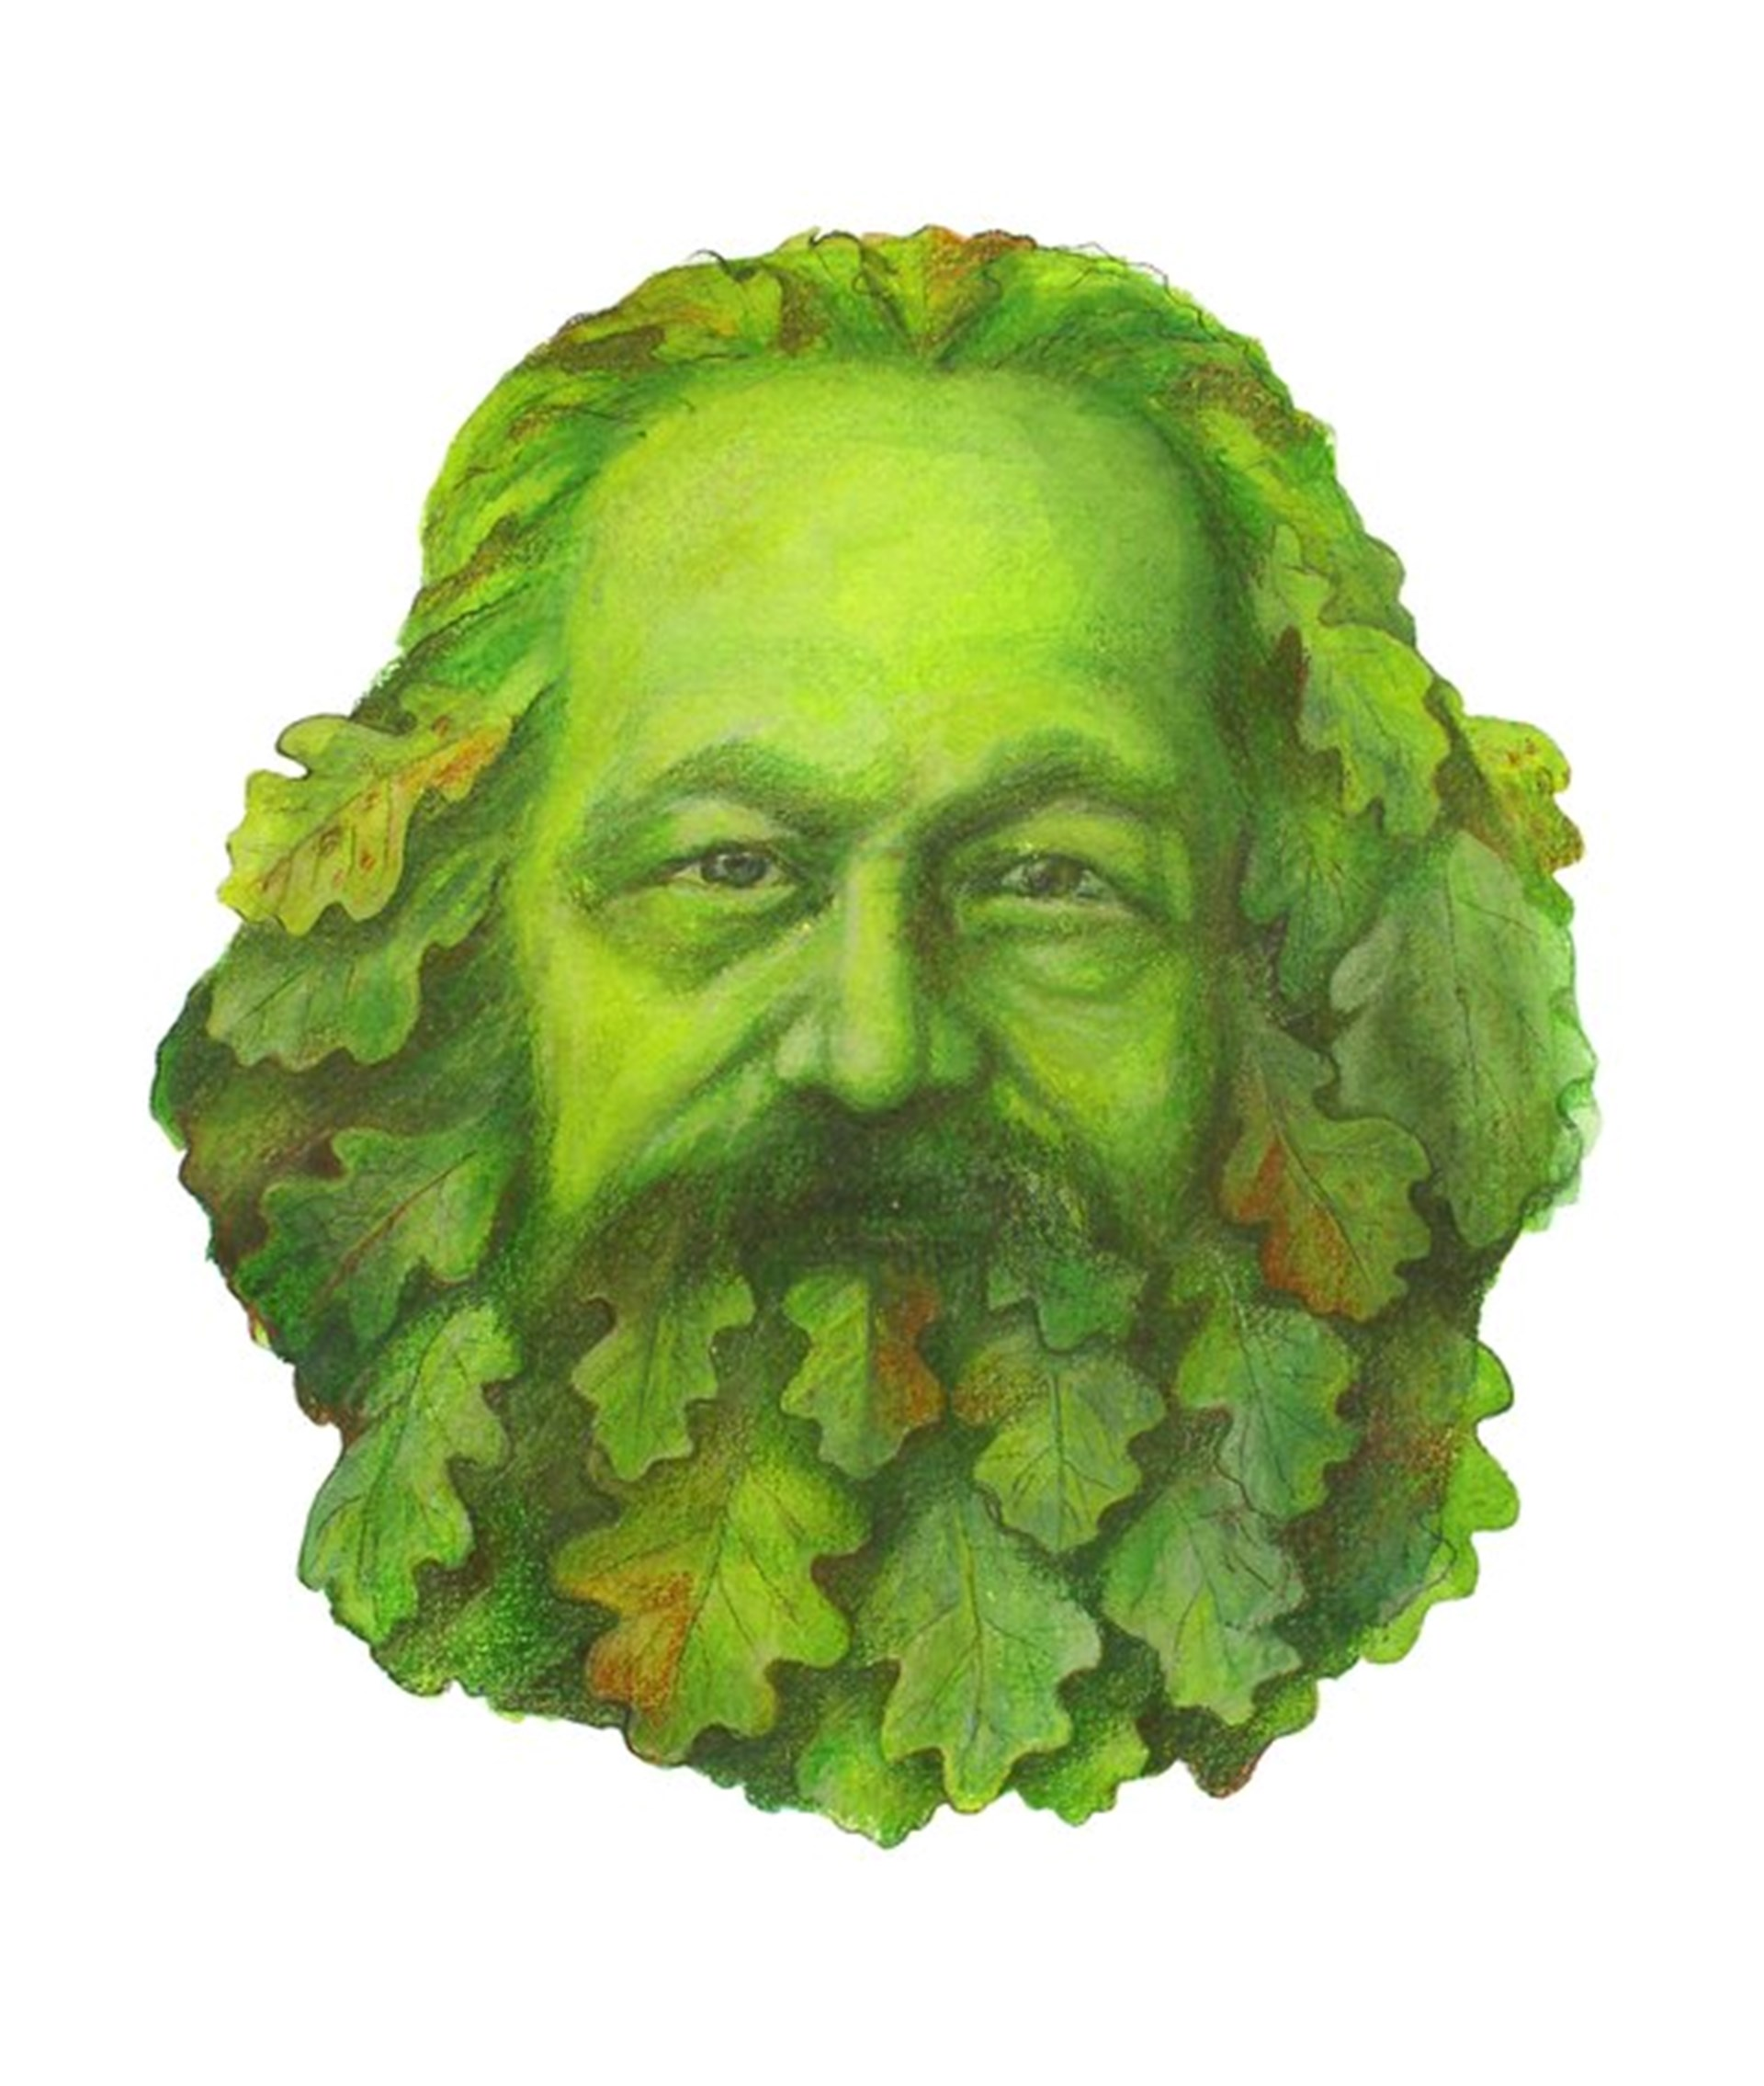 How Green Parties Recycle Old Socialist Ideas - Foundation for